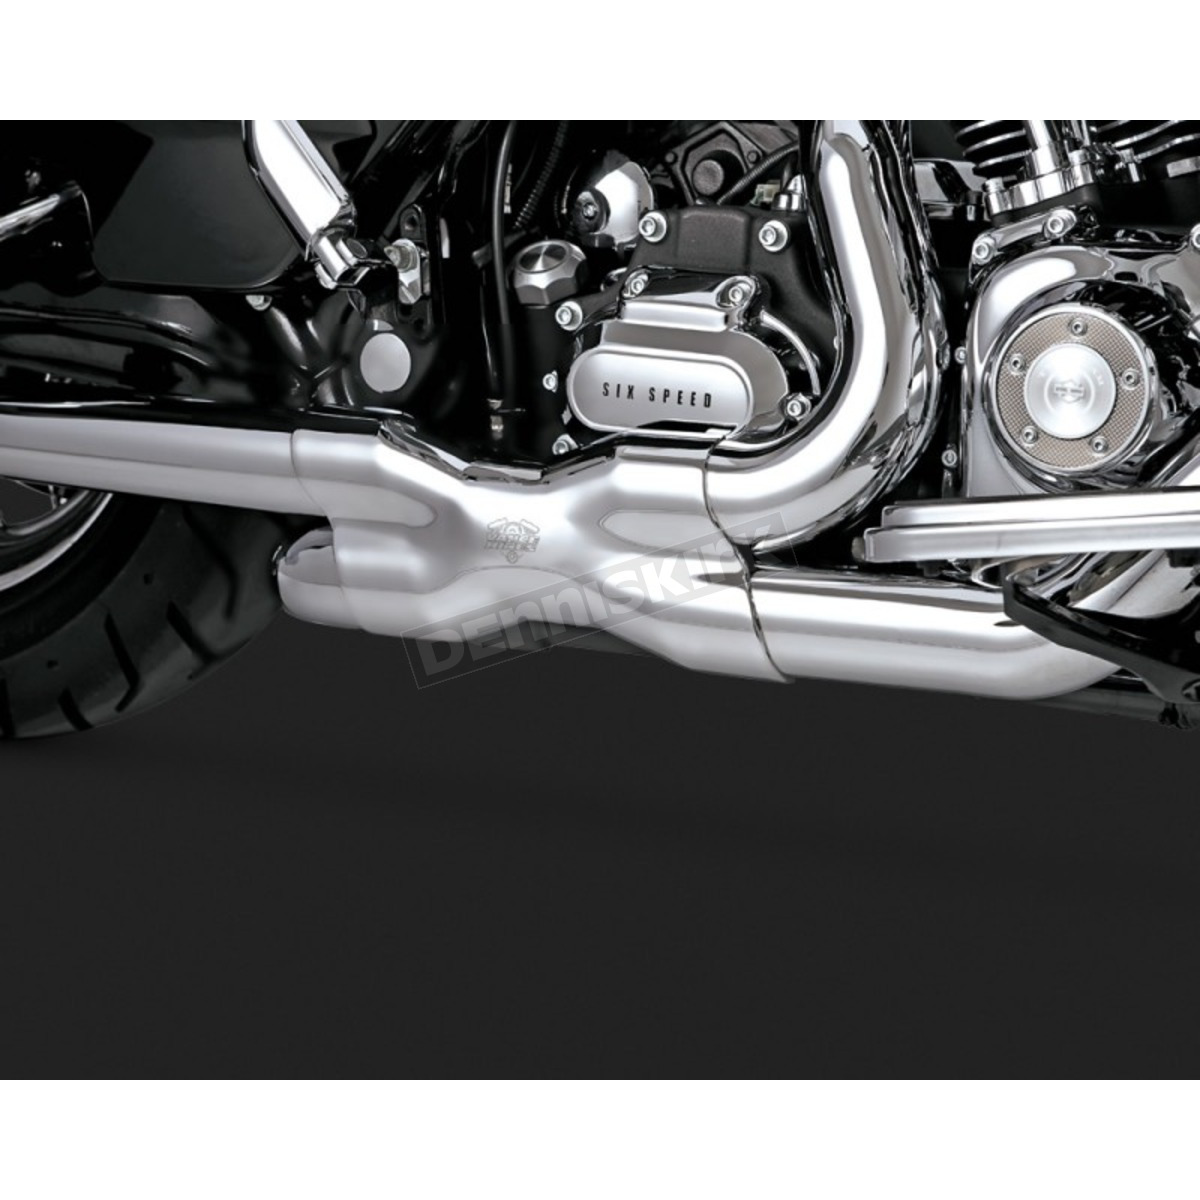 Chrome Power Duals Head Pipes - 16832